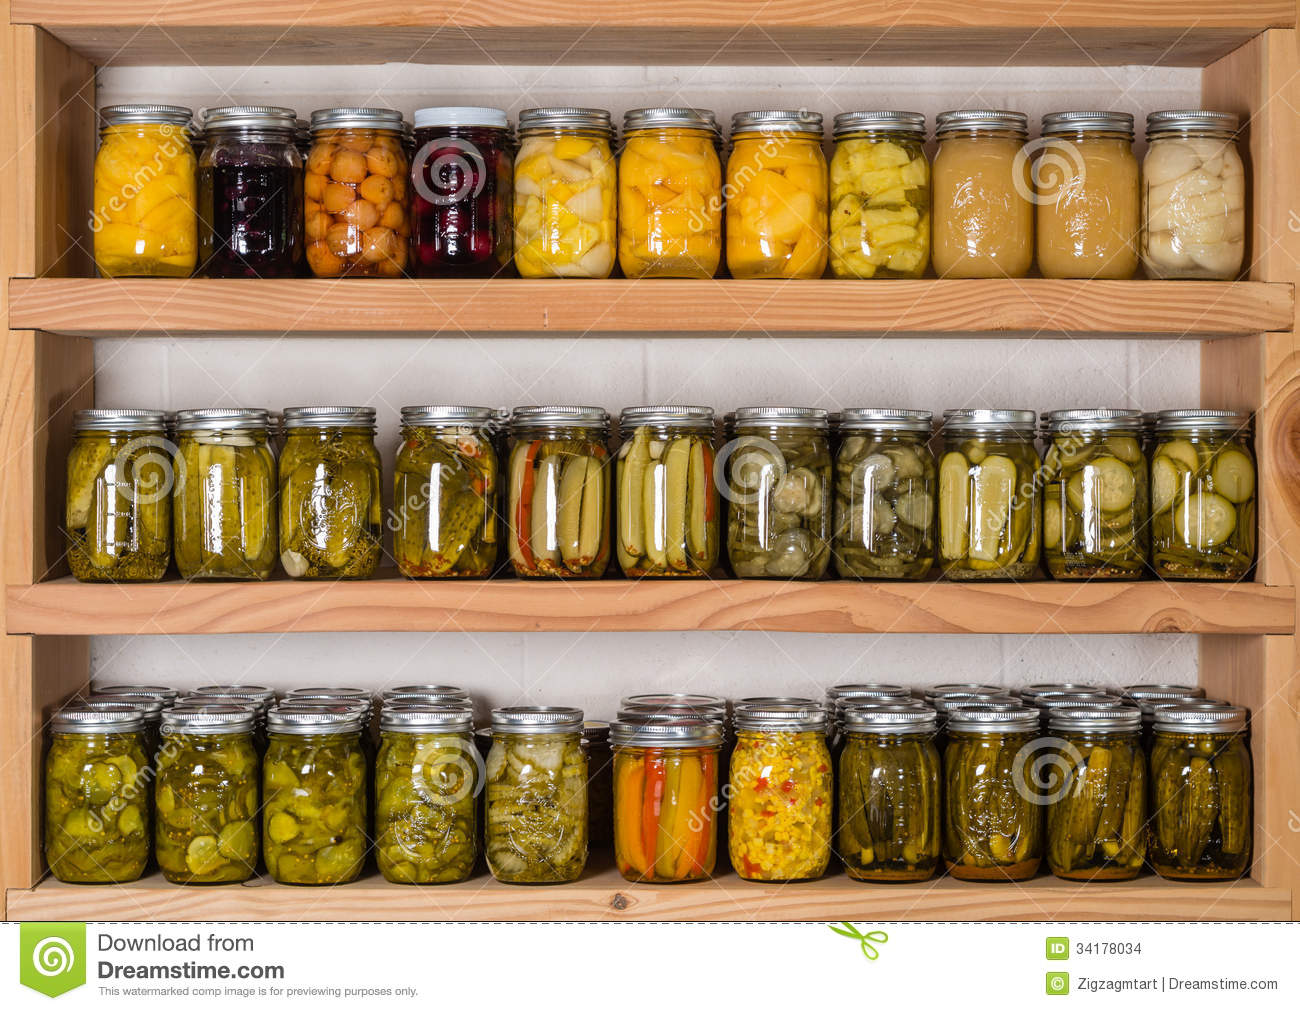 Miraculous Storage Shelves With Canned Food Stock Photo Image Of Download Free Architecture Designs Ferenbritishbridgeorg